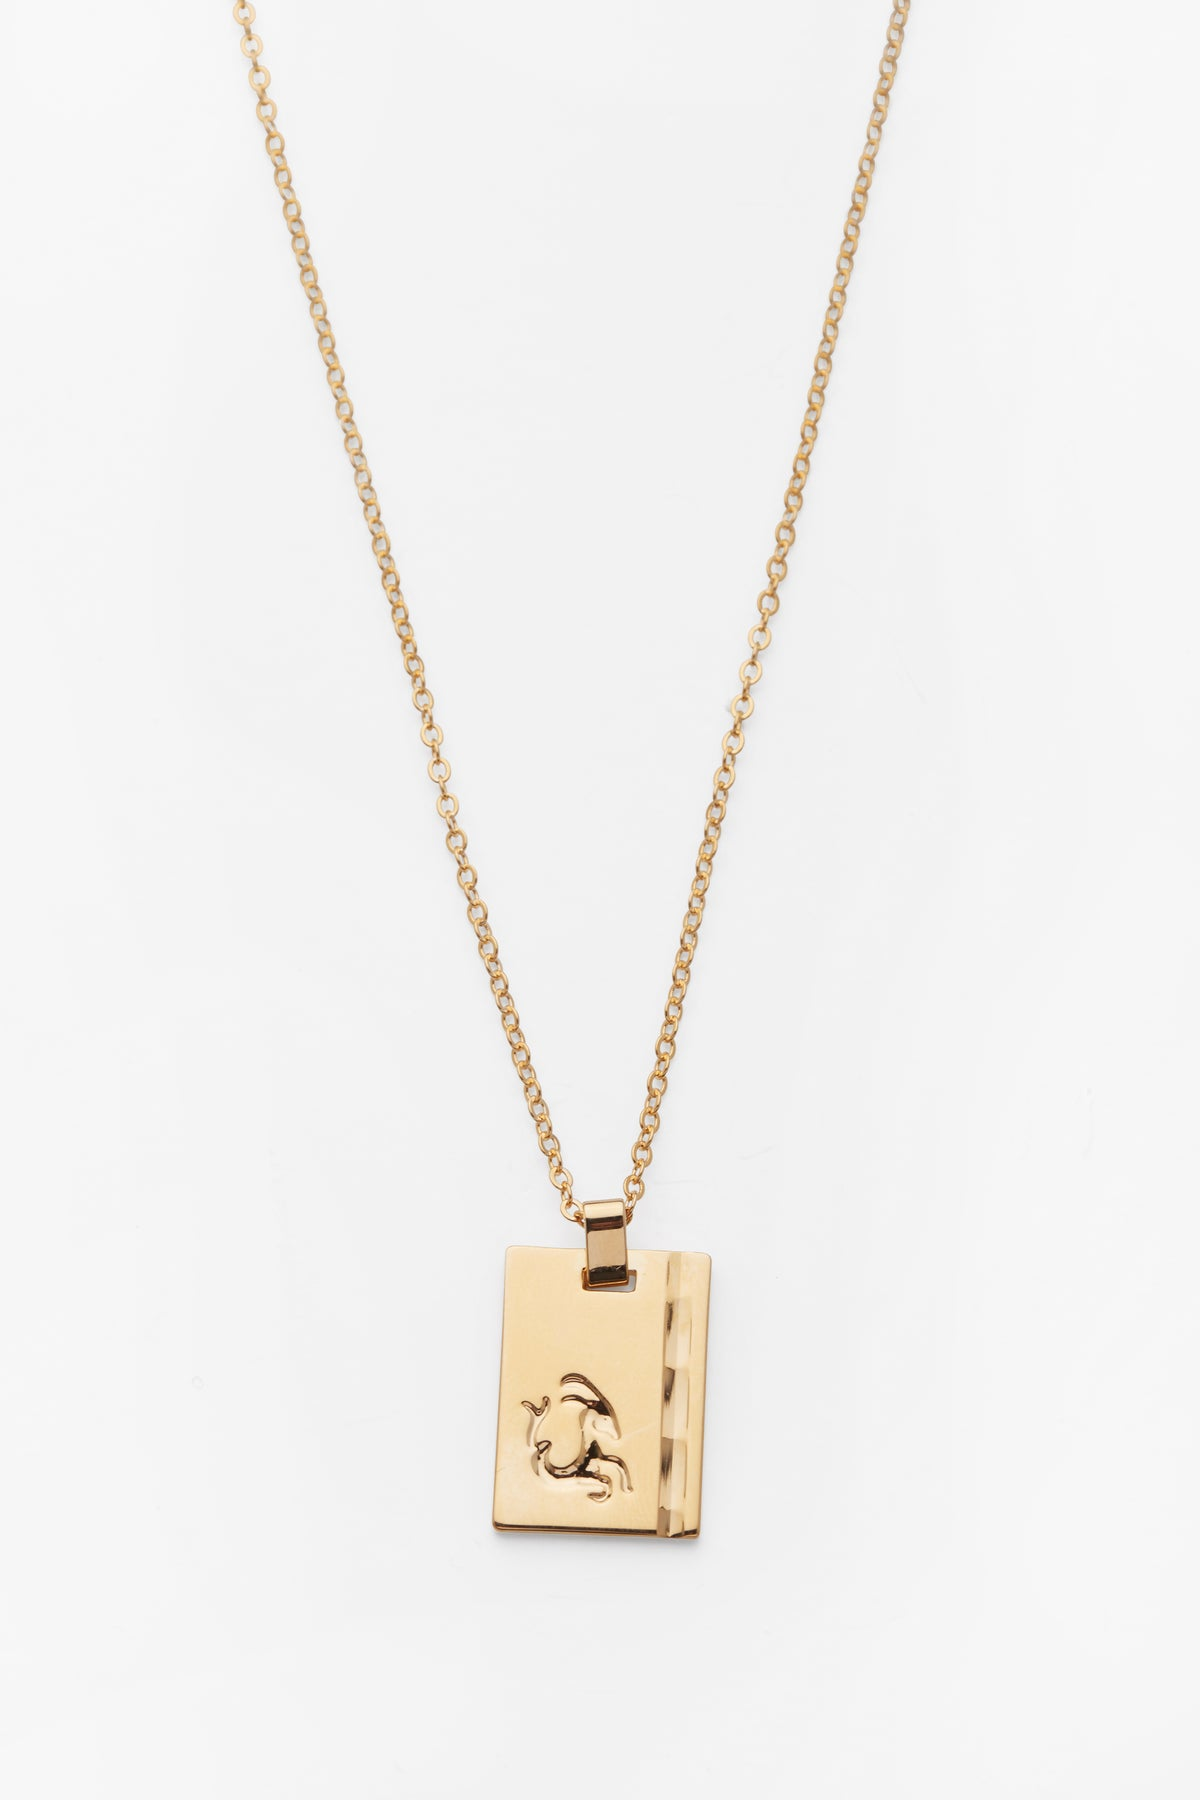 Gold Star Sign Necklace Capricorn